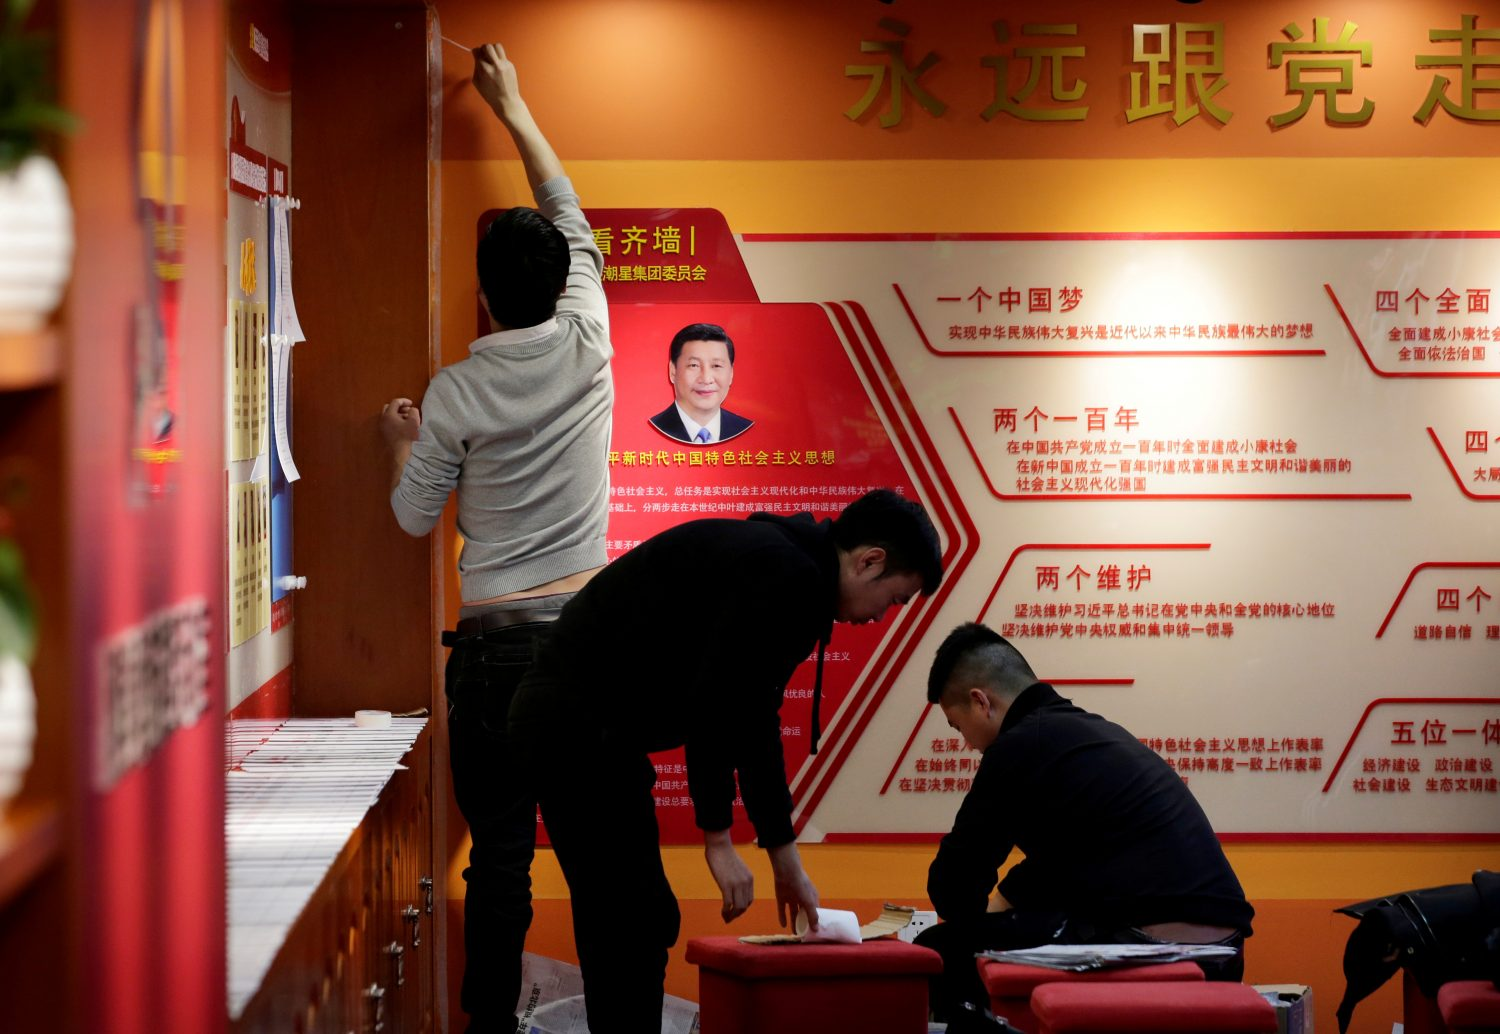 FILE PHOTO: Workers decorate the party activity room next to a portrait of Chinese president Xi Jinping at Tidal Star Group headquarters in Beijing, China, February 25, 2019. REUTERS/Jason Lee/File Photo